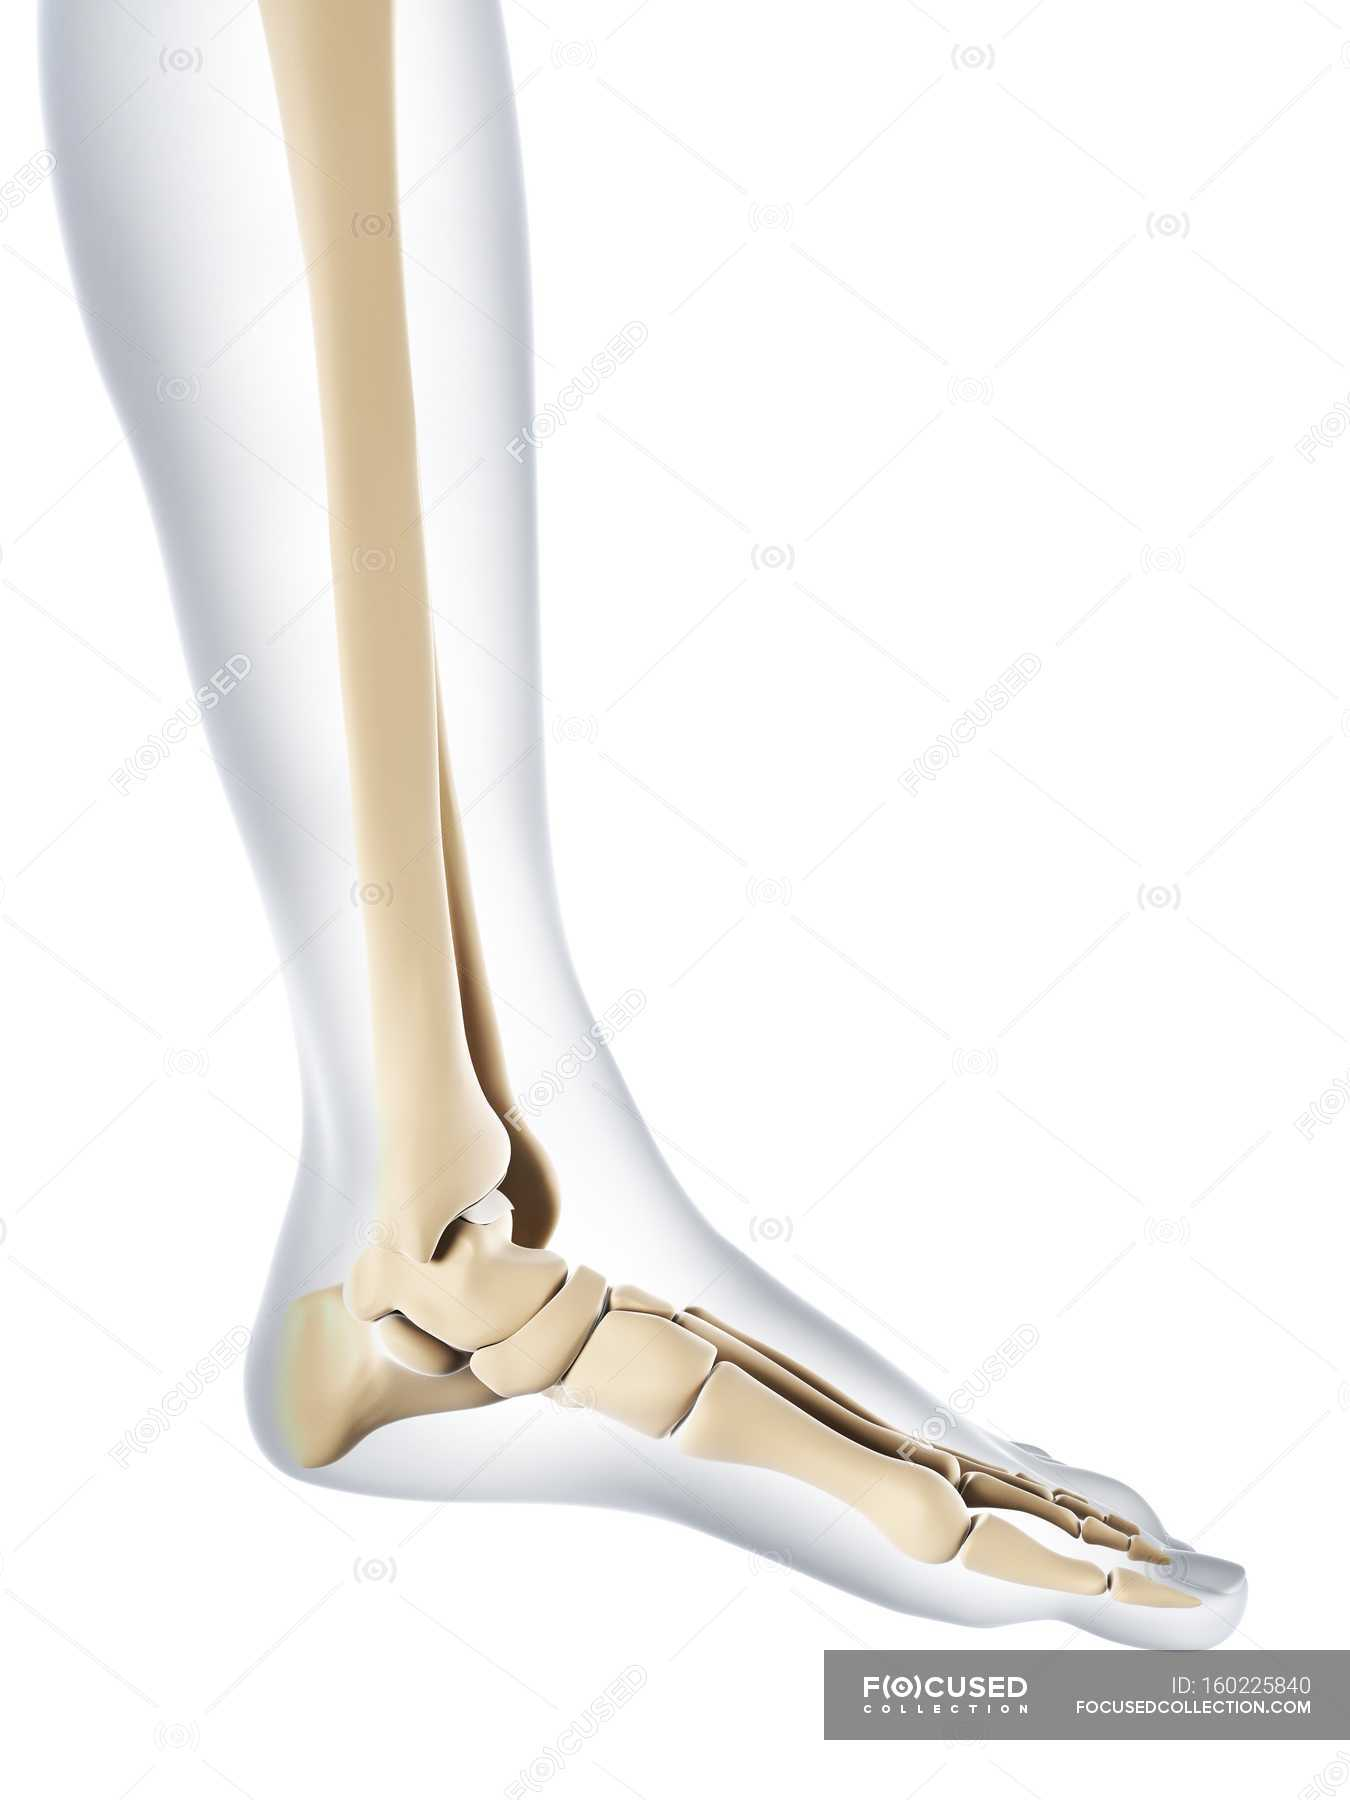 Normal foot bones anatomy — Stock Photo | #160225840